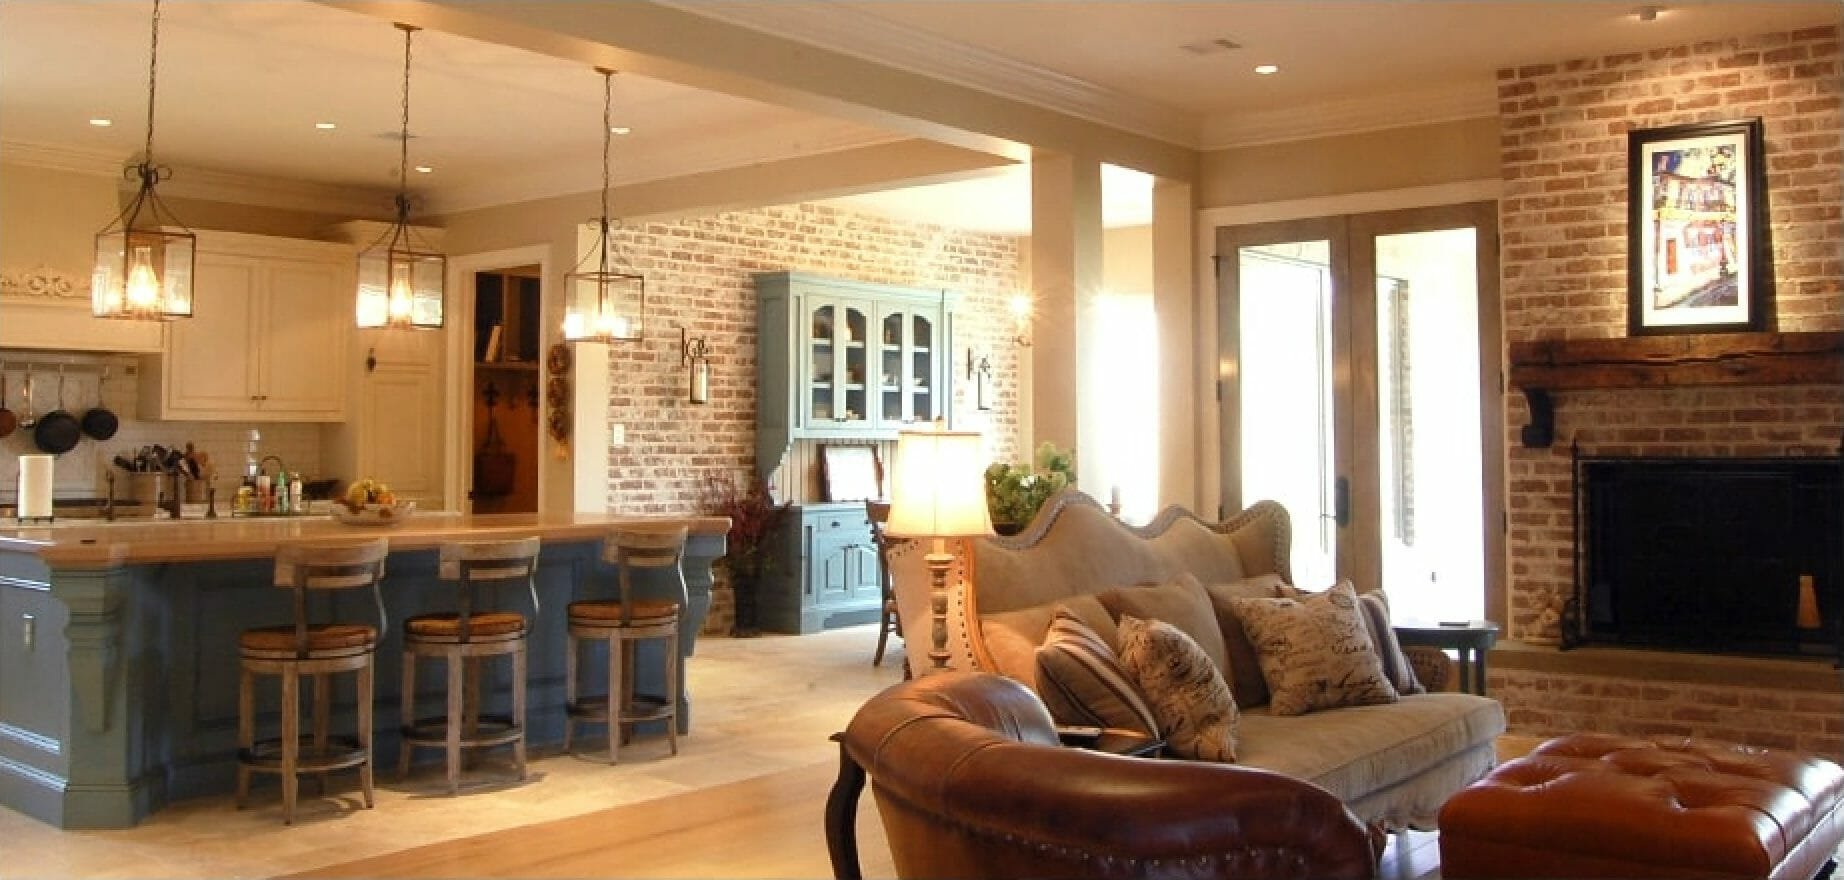 French country open living by interior designer in houston - brickmoon designs 2